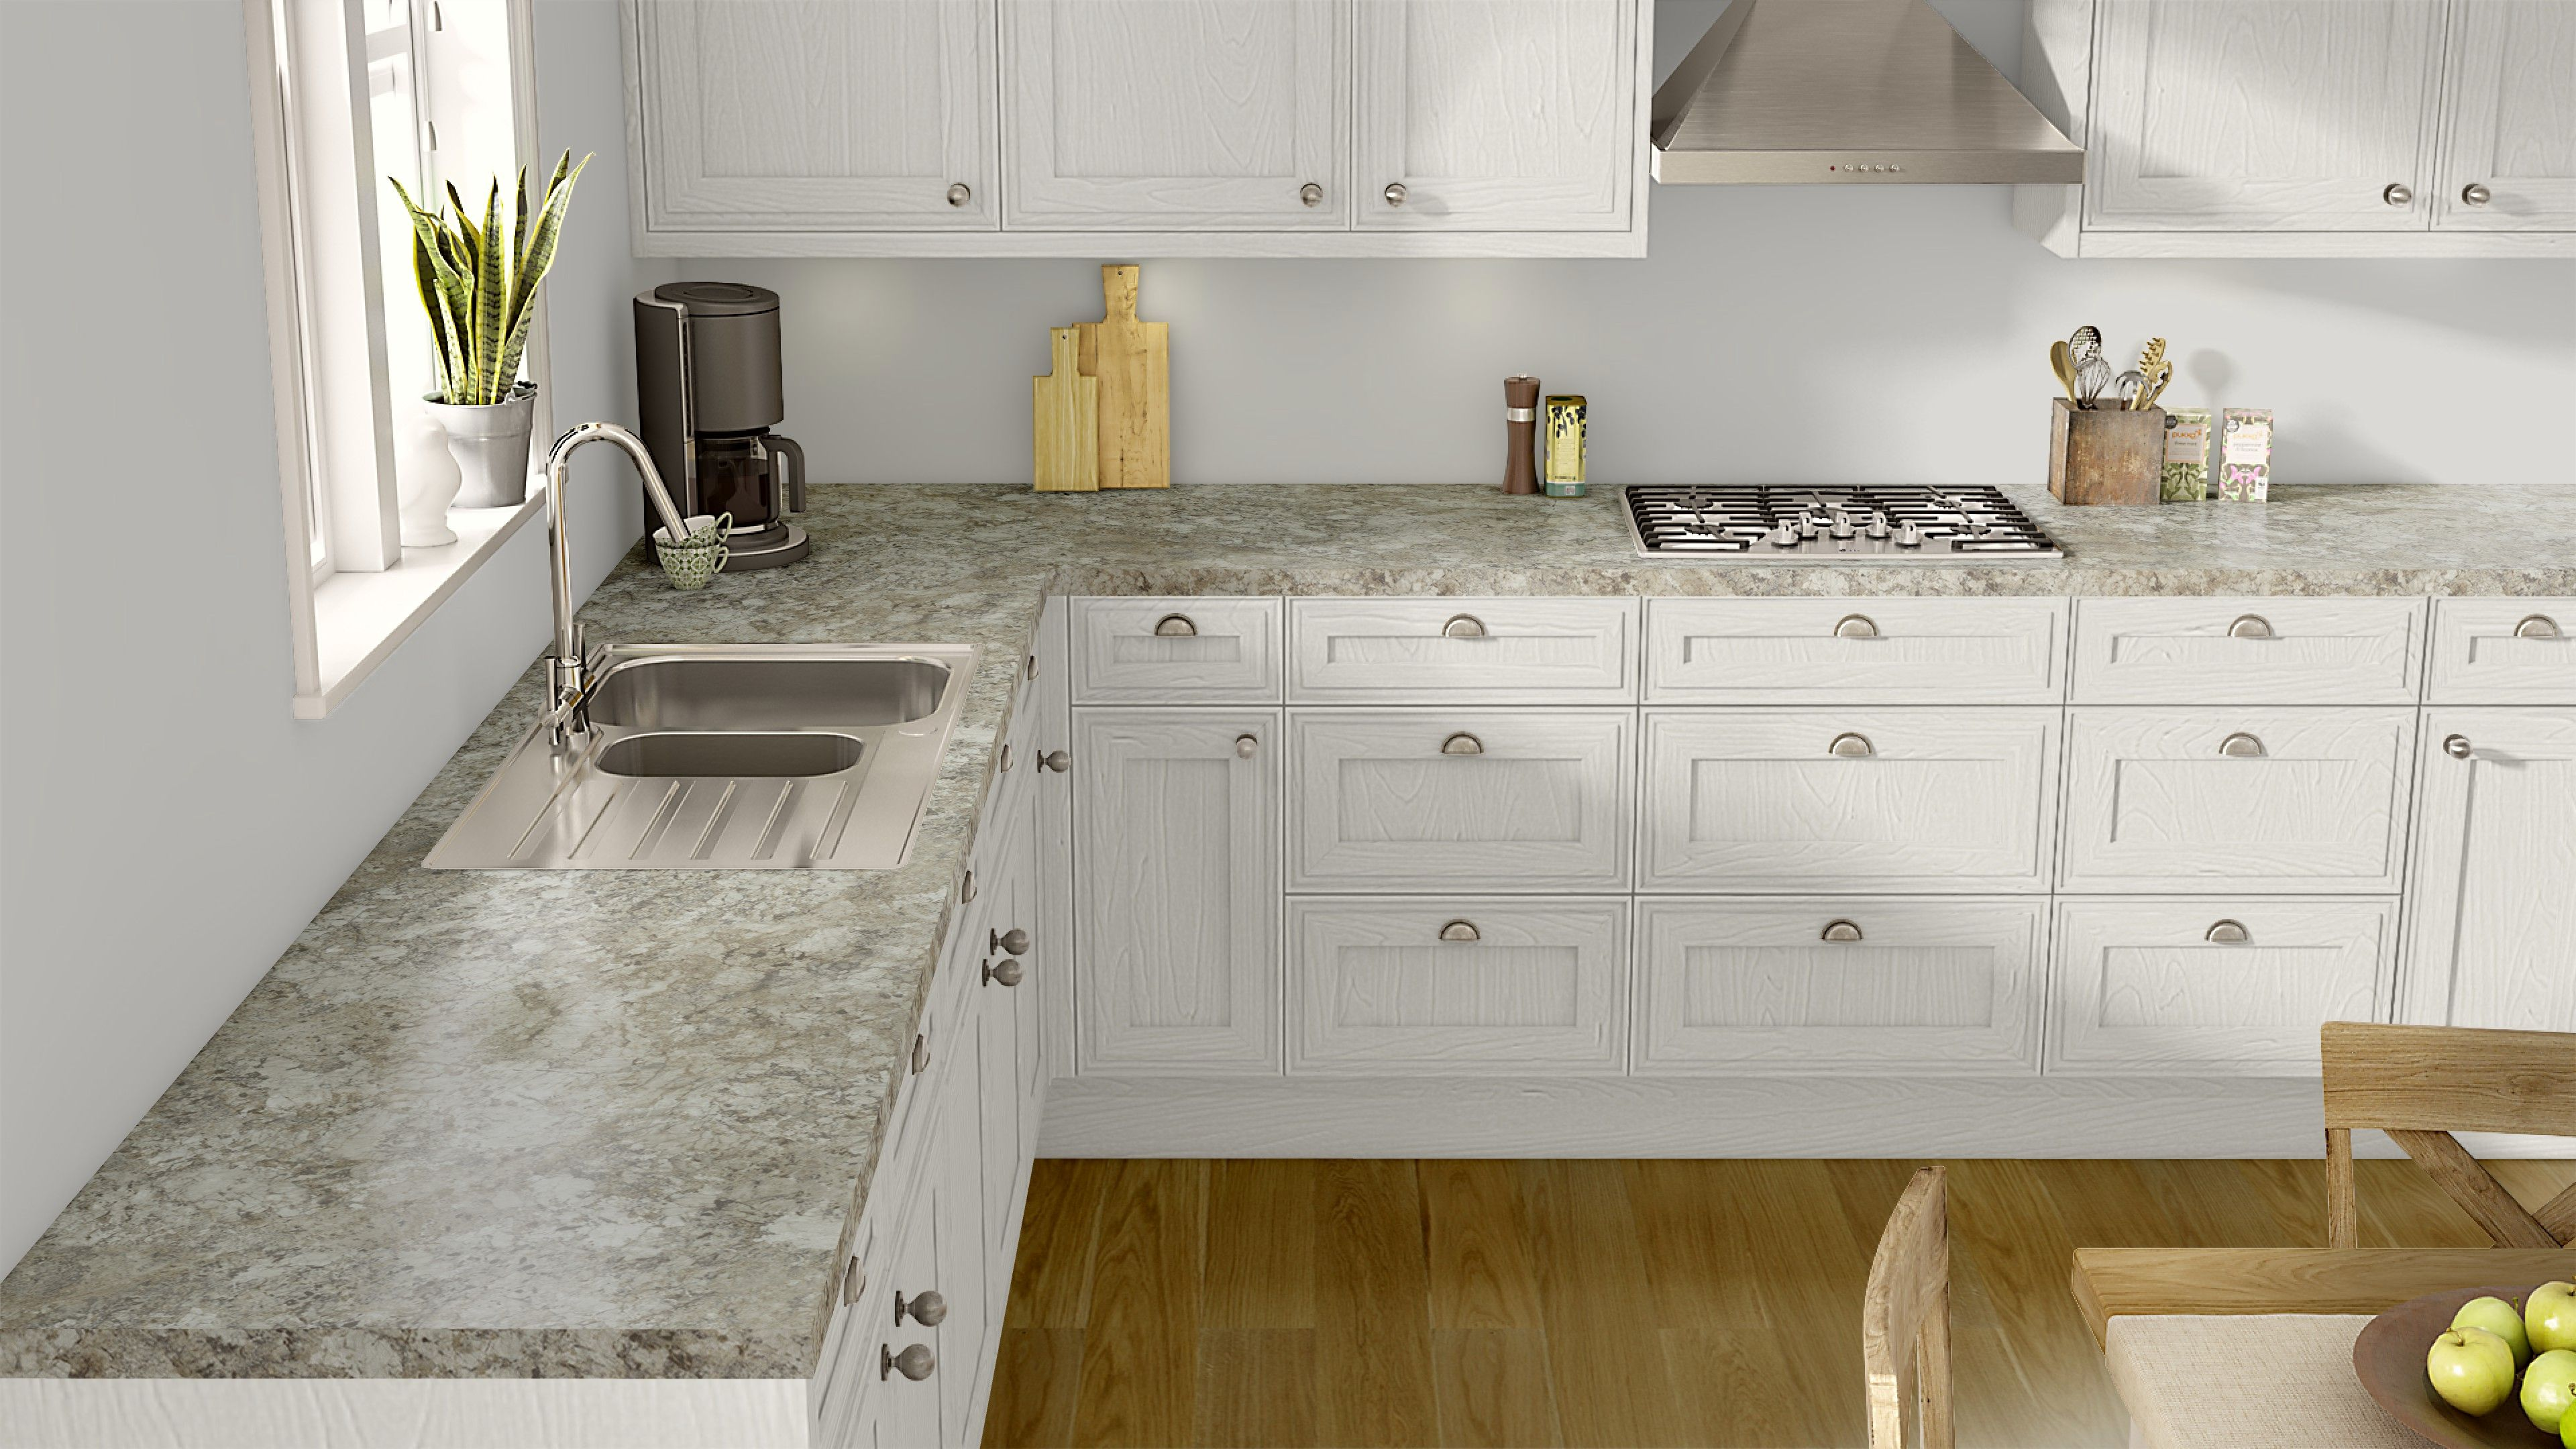 Get Inspired For Your Kitchen Renovation With Wilsonart S Free Visualizer Kitchen Renovation Kitchen Remodel Wilsonart